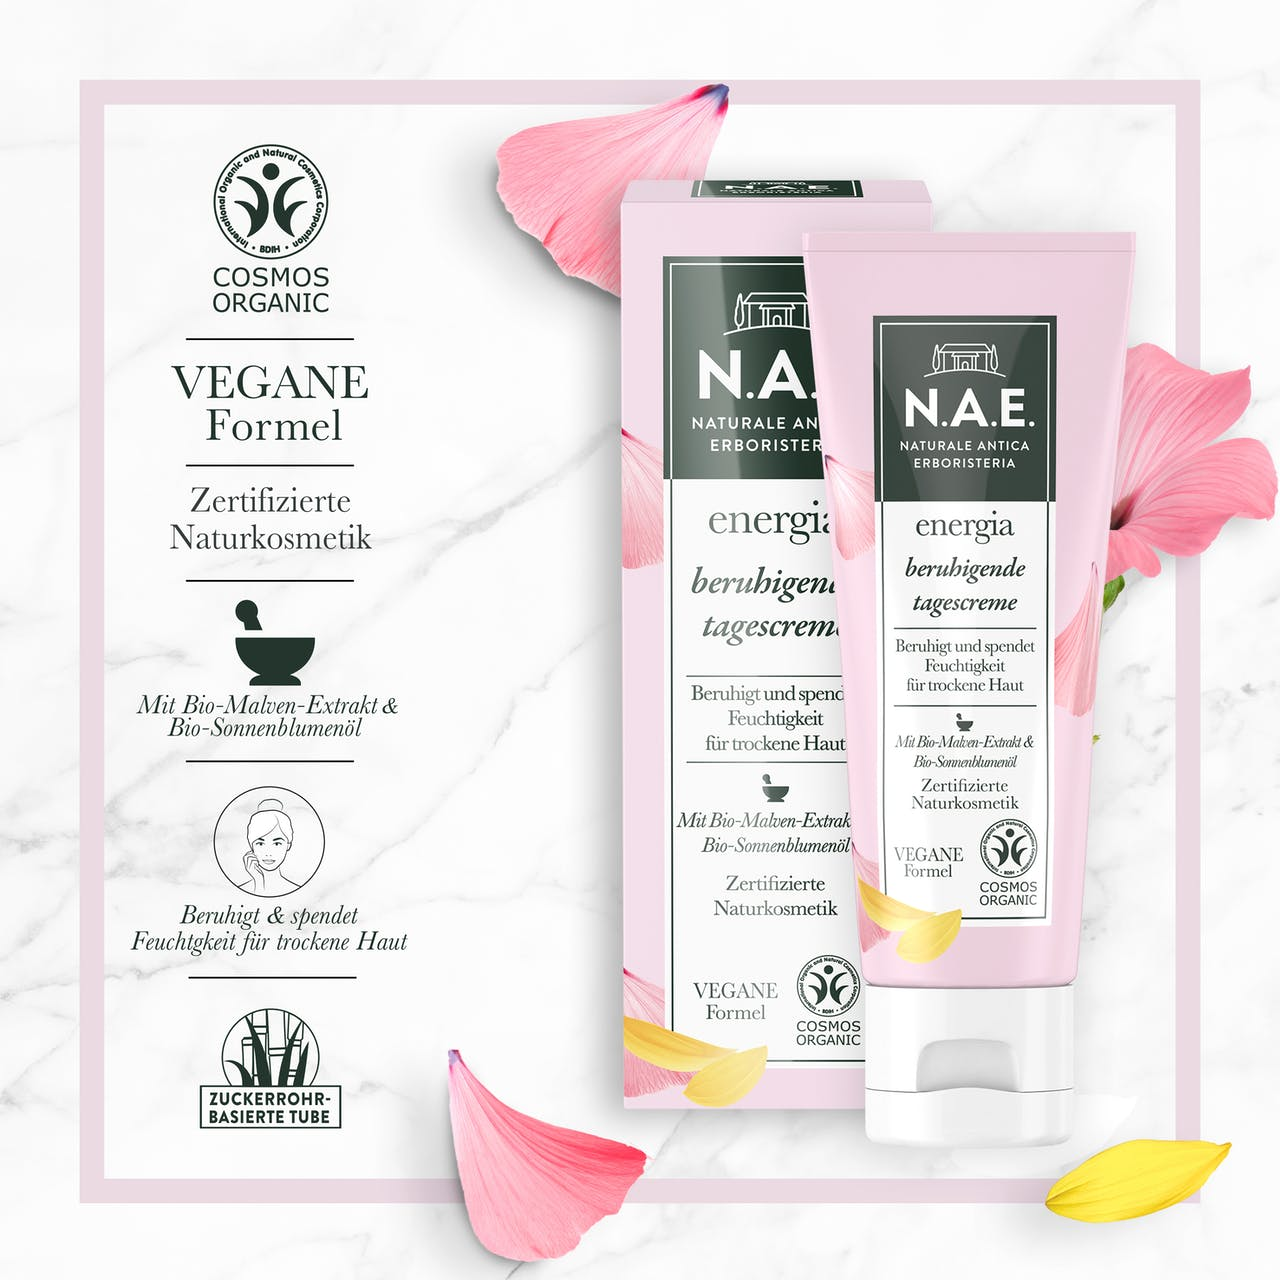 energia beruhigende tagescreme | soothing day cream